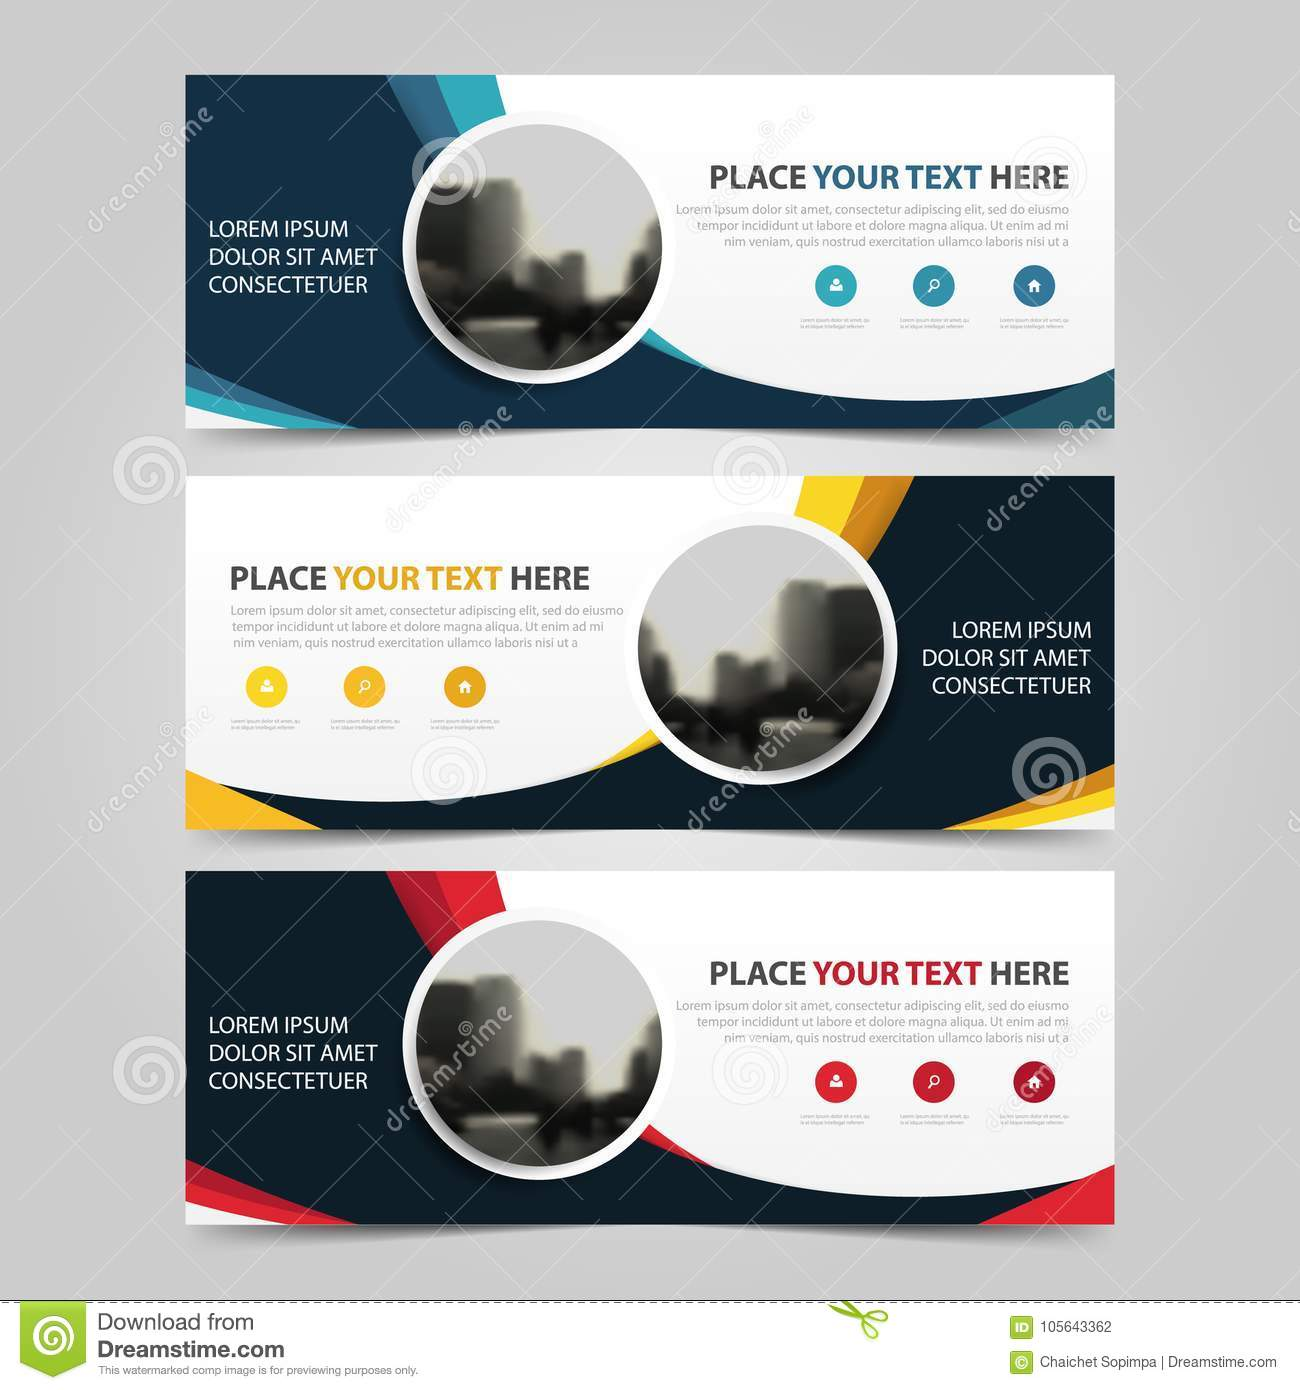 Download Free Flat Clean Corporate Business Flyer Template: Corporate Business Banner Template, Horizontal Advertising